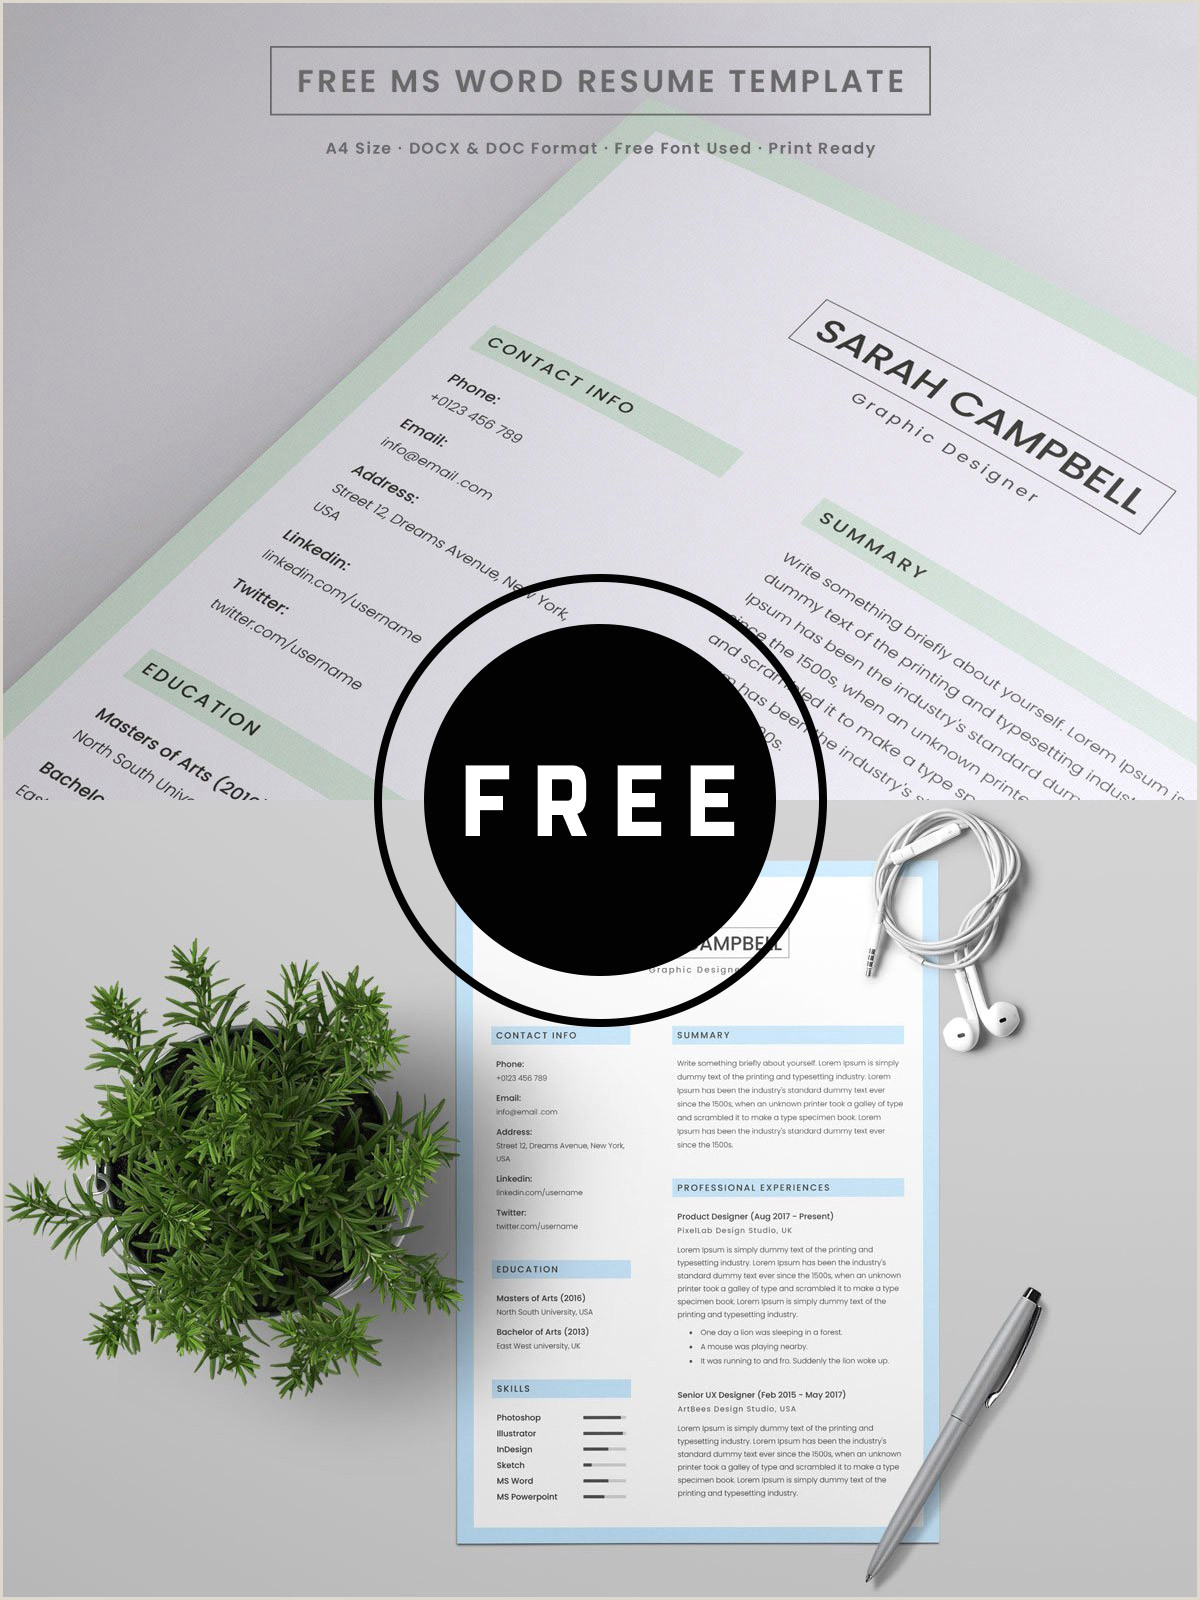 Download Template Cv format Cdr 98 Awesome Free Resume Templates for 2019 Creativetacos